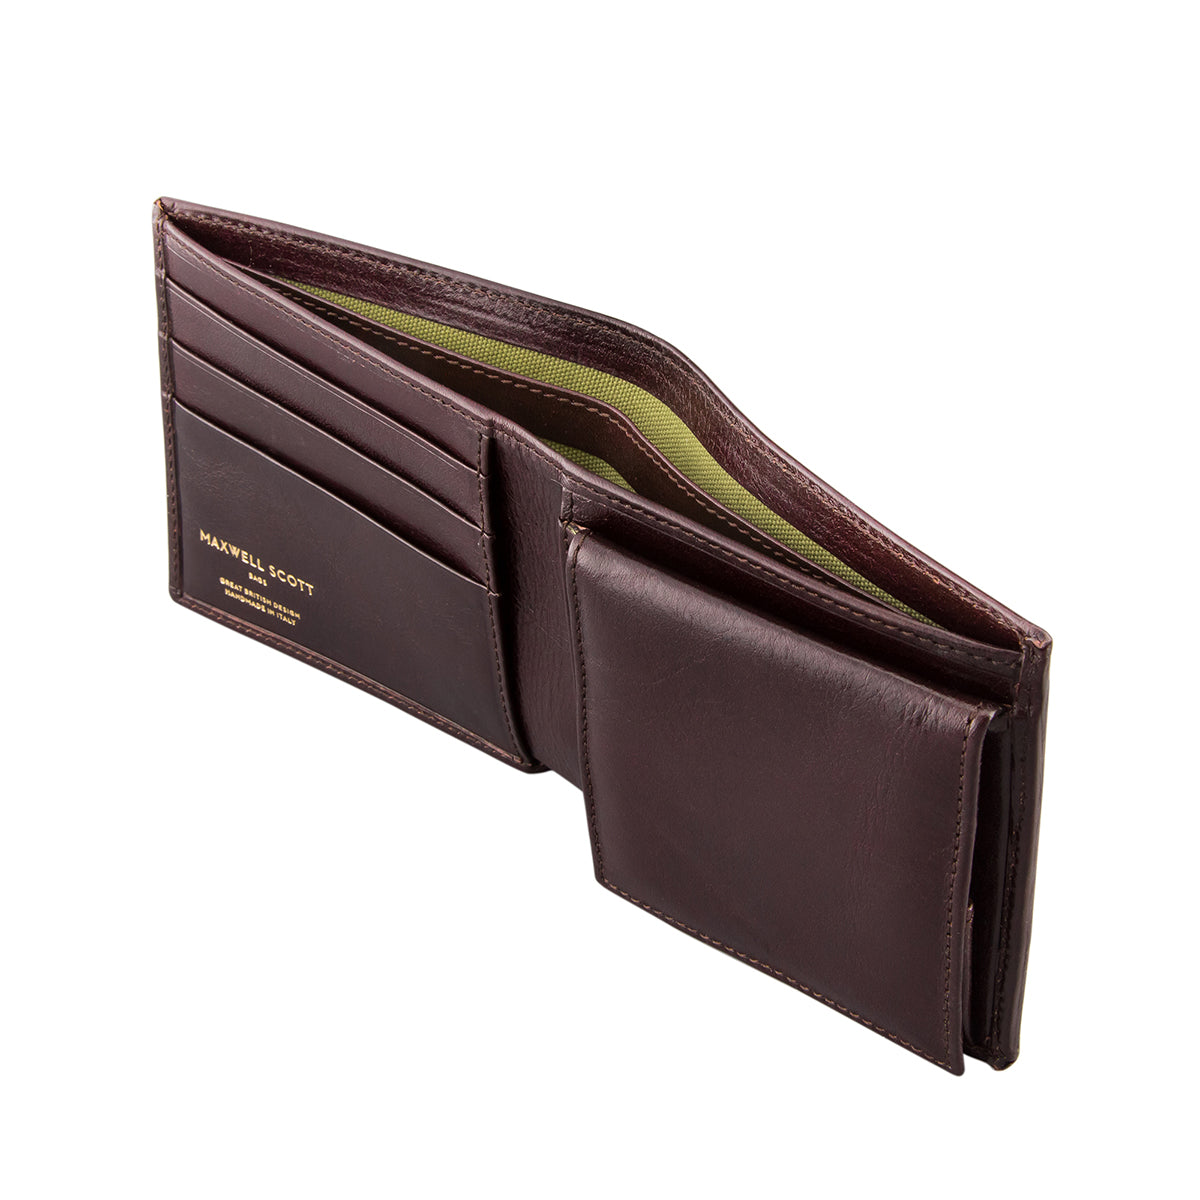 Image 4 of the 'Ticciano' Brown Veg-Tanned Leather Wallet with Coin Pocket